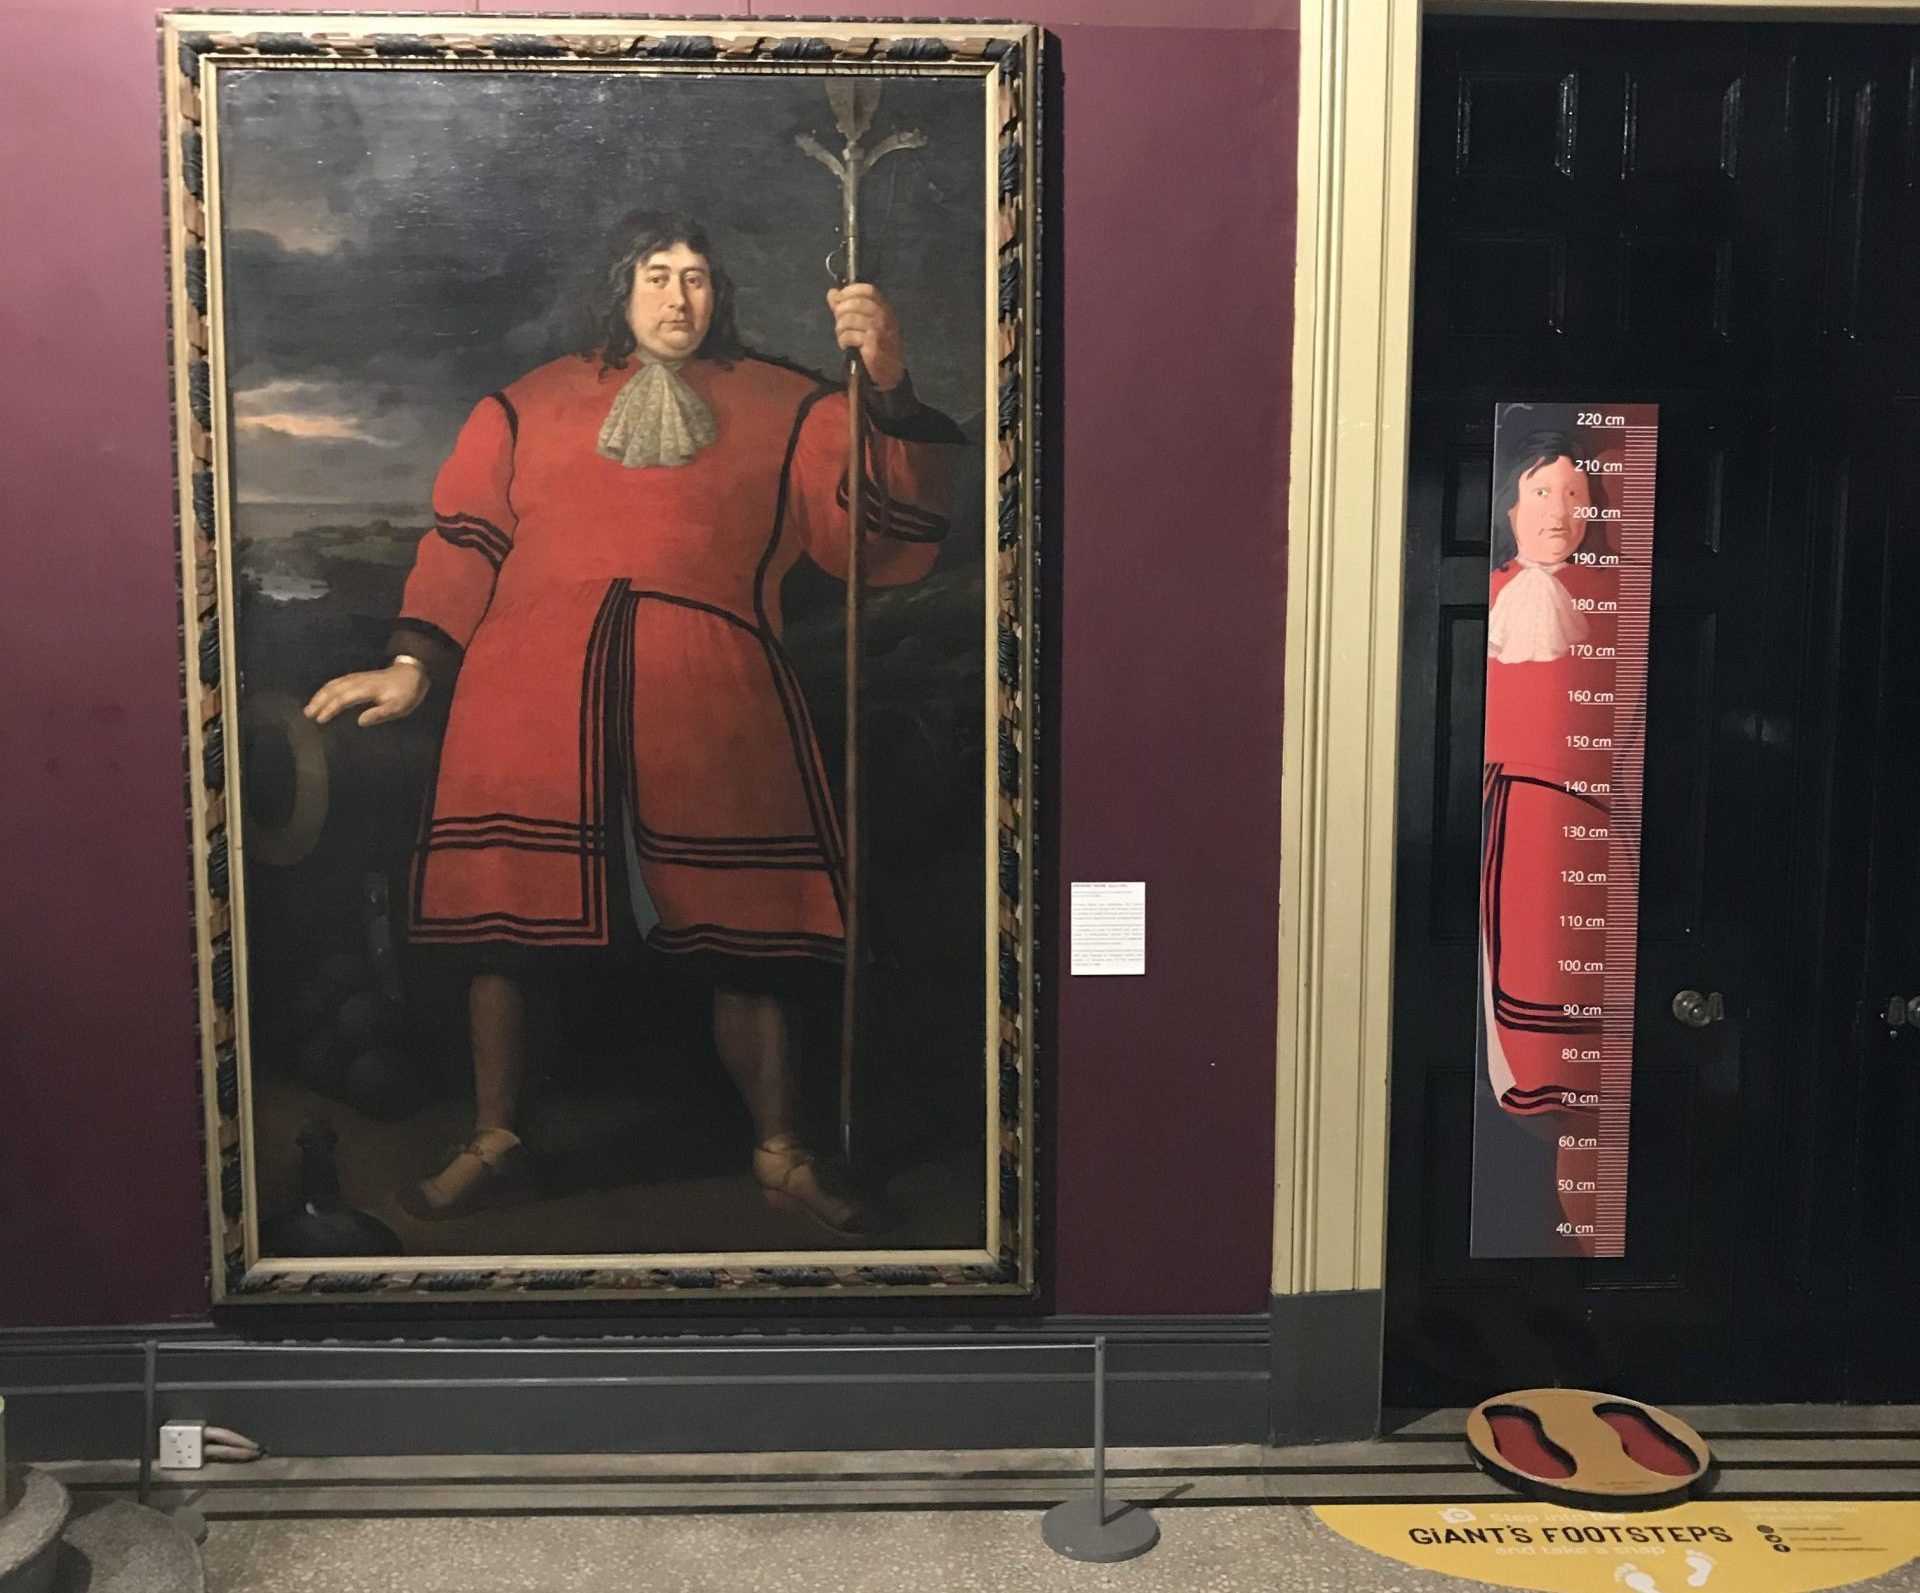 Portrait of Anthony Payne, alongside an interactive that allows visitors to compare their height and feet size